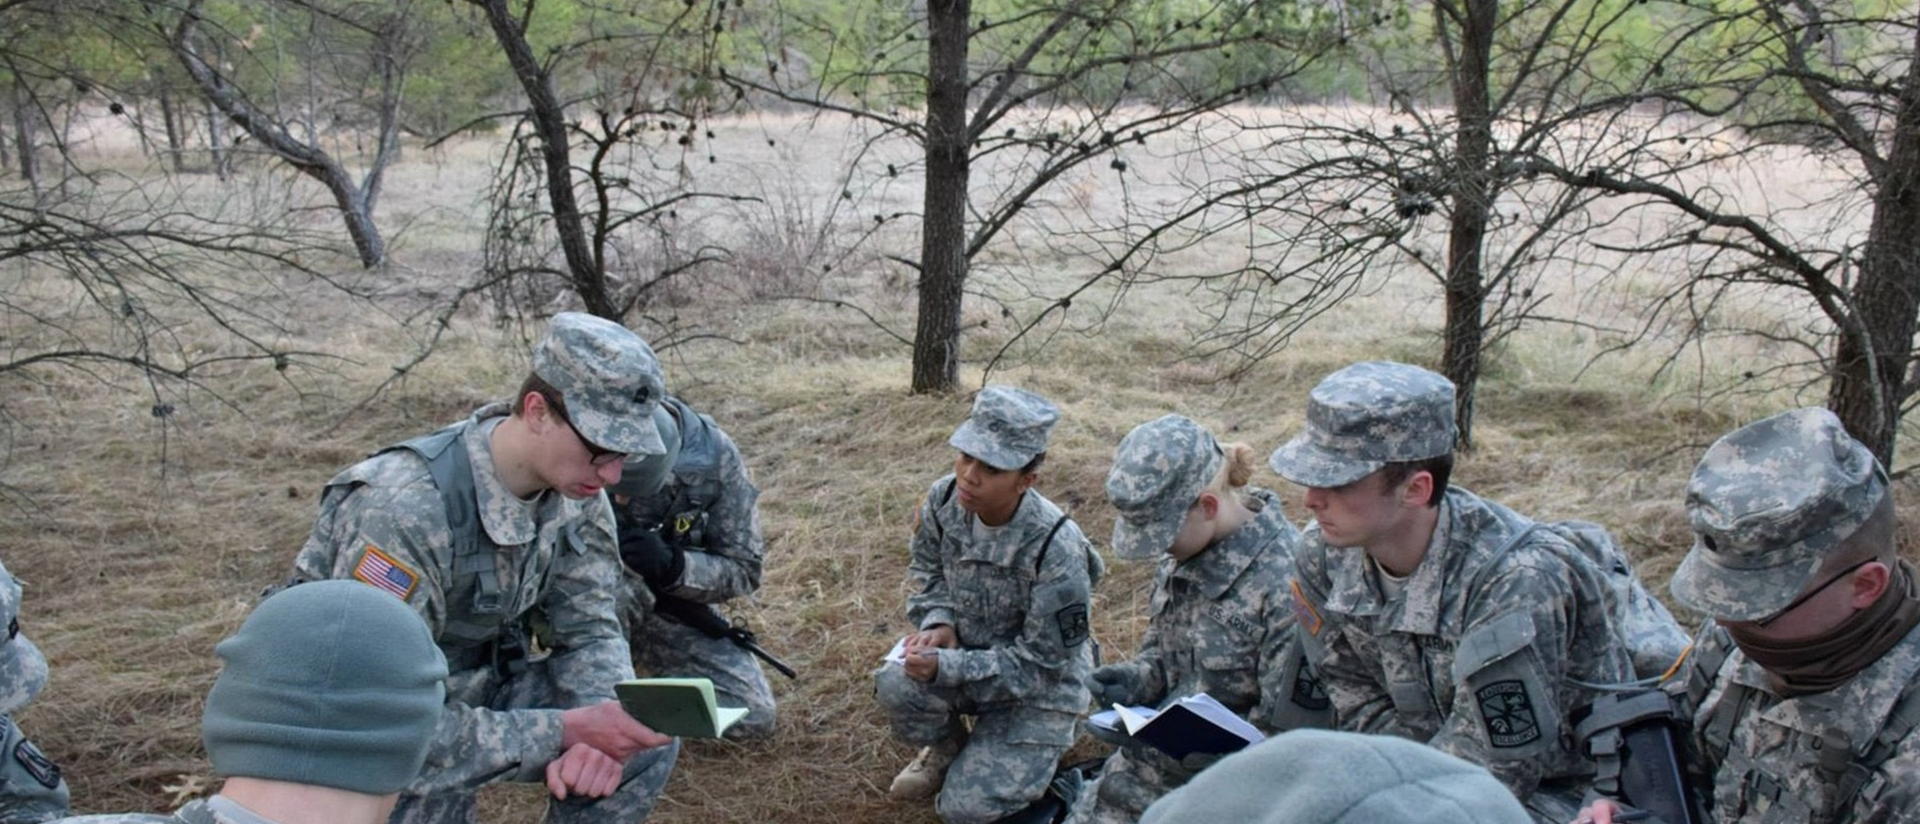 ROTC students training in the field